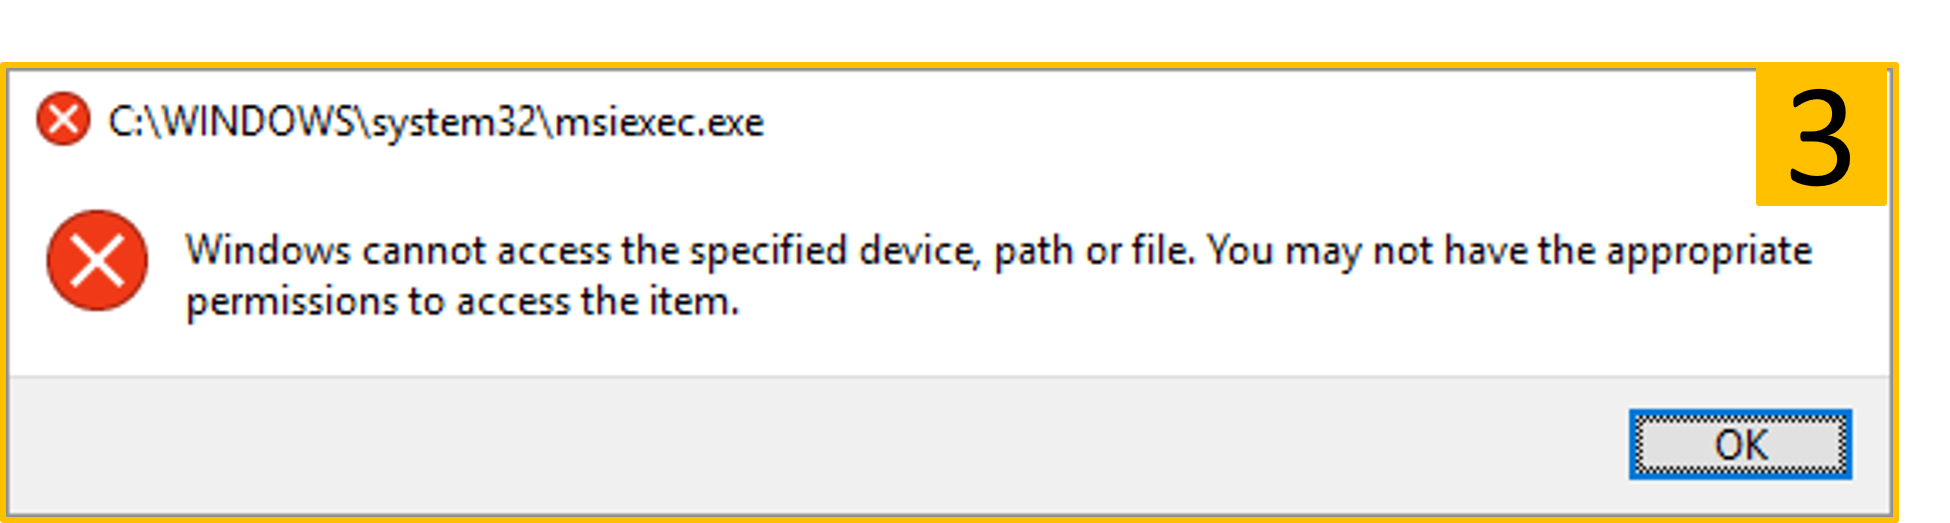 msiexec.exe windows cannot access